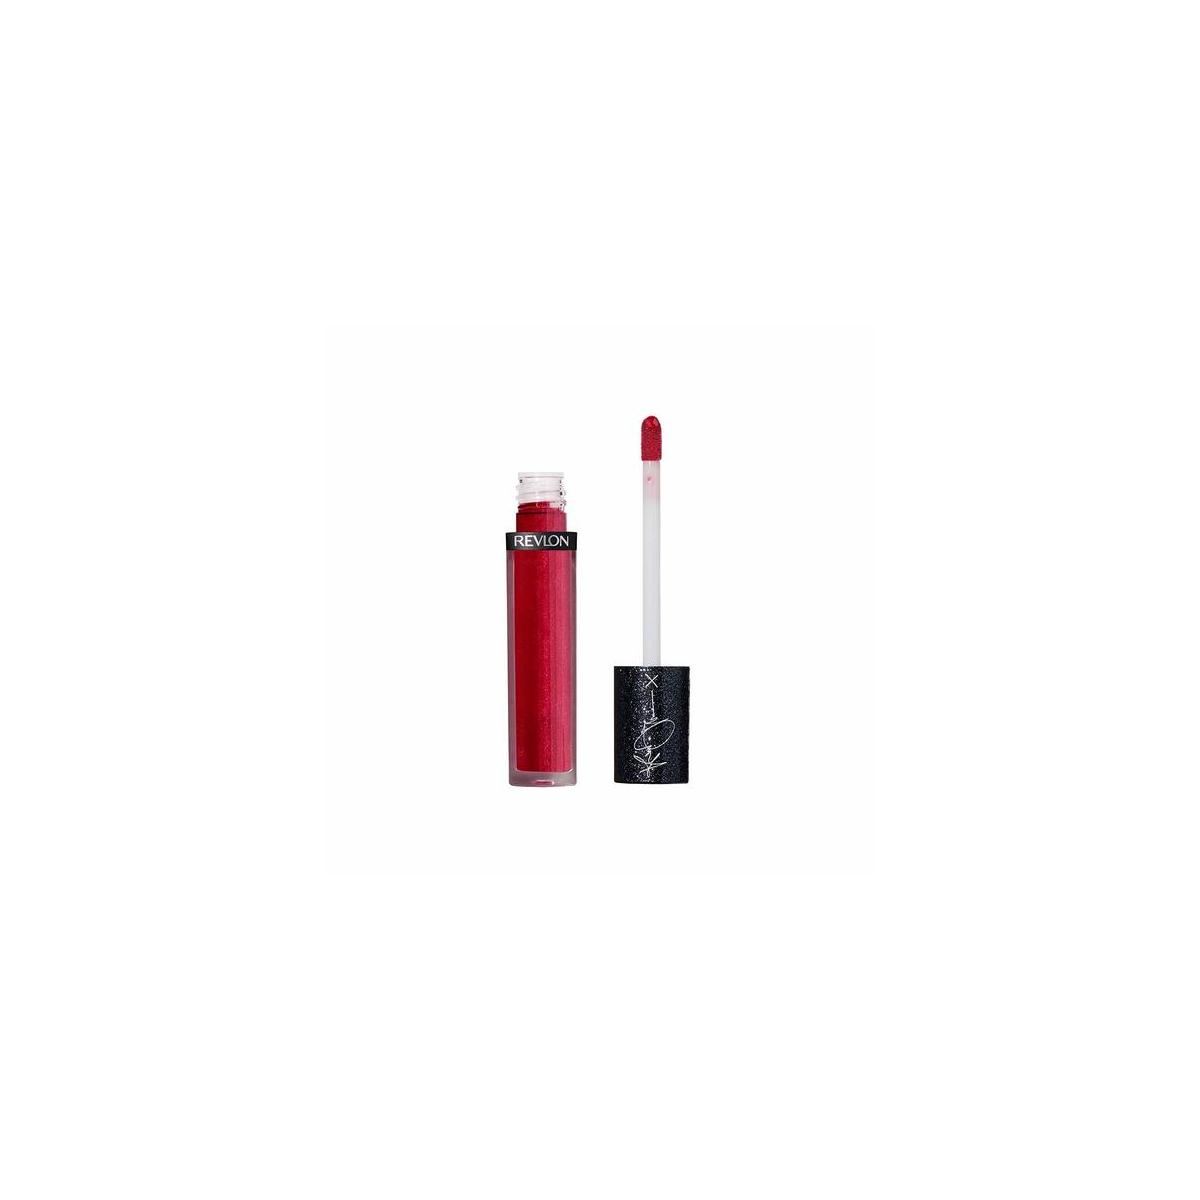 Revlon Never Enough Lip, Worship Limited Edition Lip Kit by Ashley Graham, 3 Piece Kit with Lipstick, Lip gloss, Lip liner, 1 Set